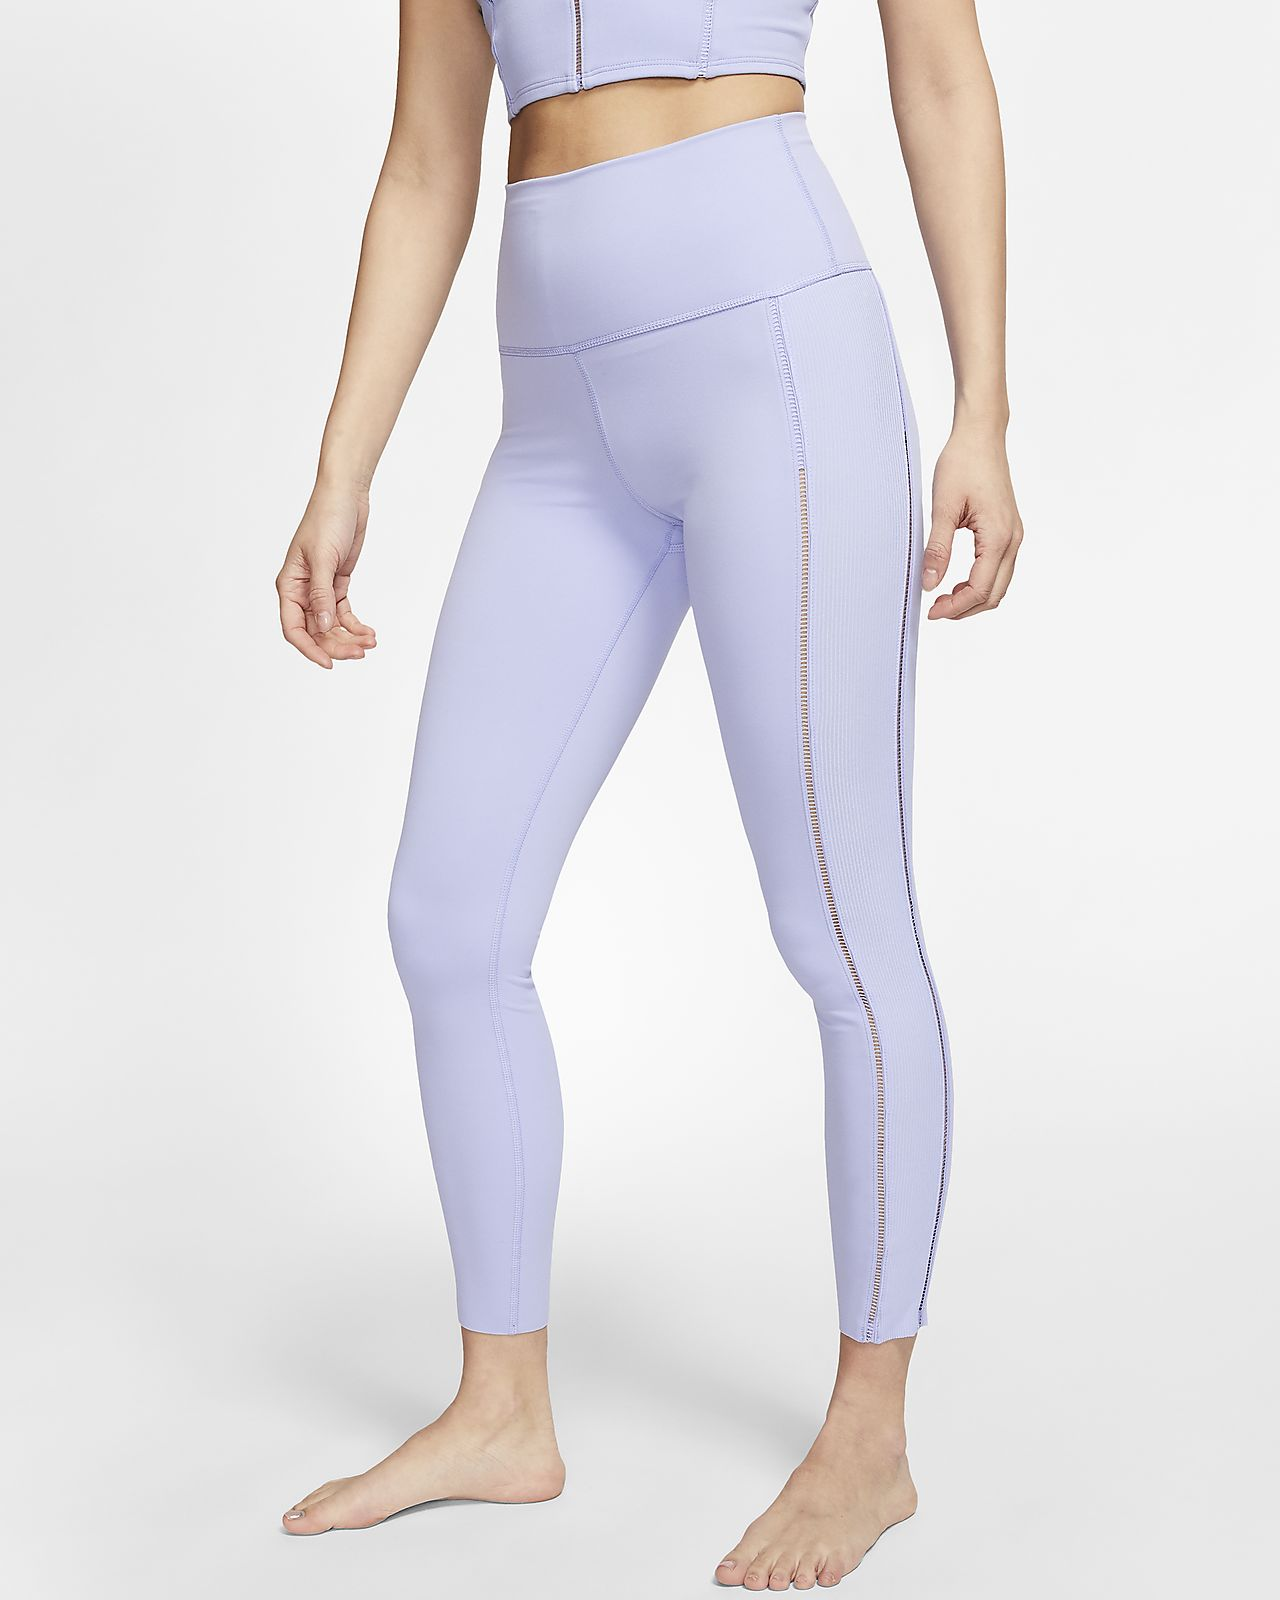 Tights a costine Infinalon a 7/8 Nike Yoga Luxe - Donna